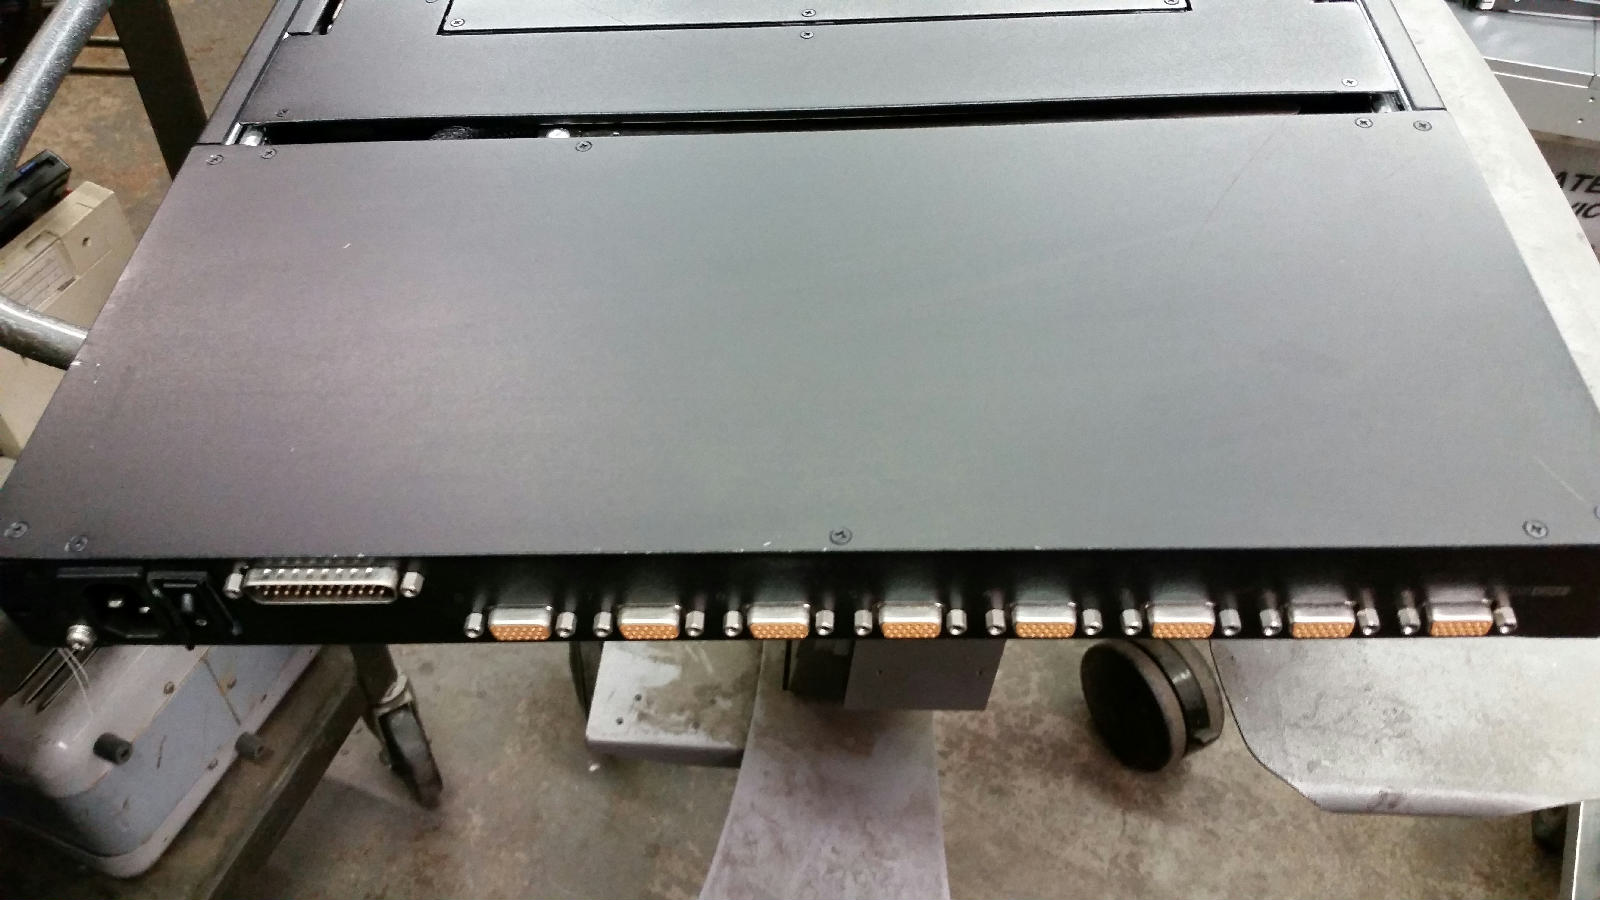 Apc 17 Rack Lcd Consoleapc Console With Integrated 8 Ap5816 16 Port Analog Kvm Switch Ap5808 Rackmount